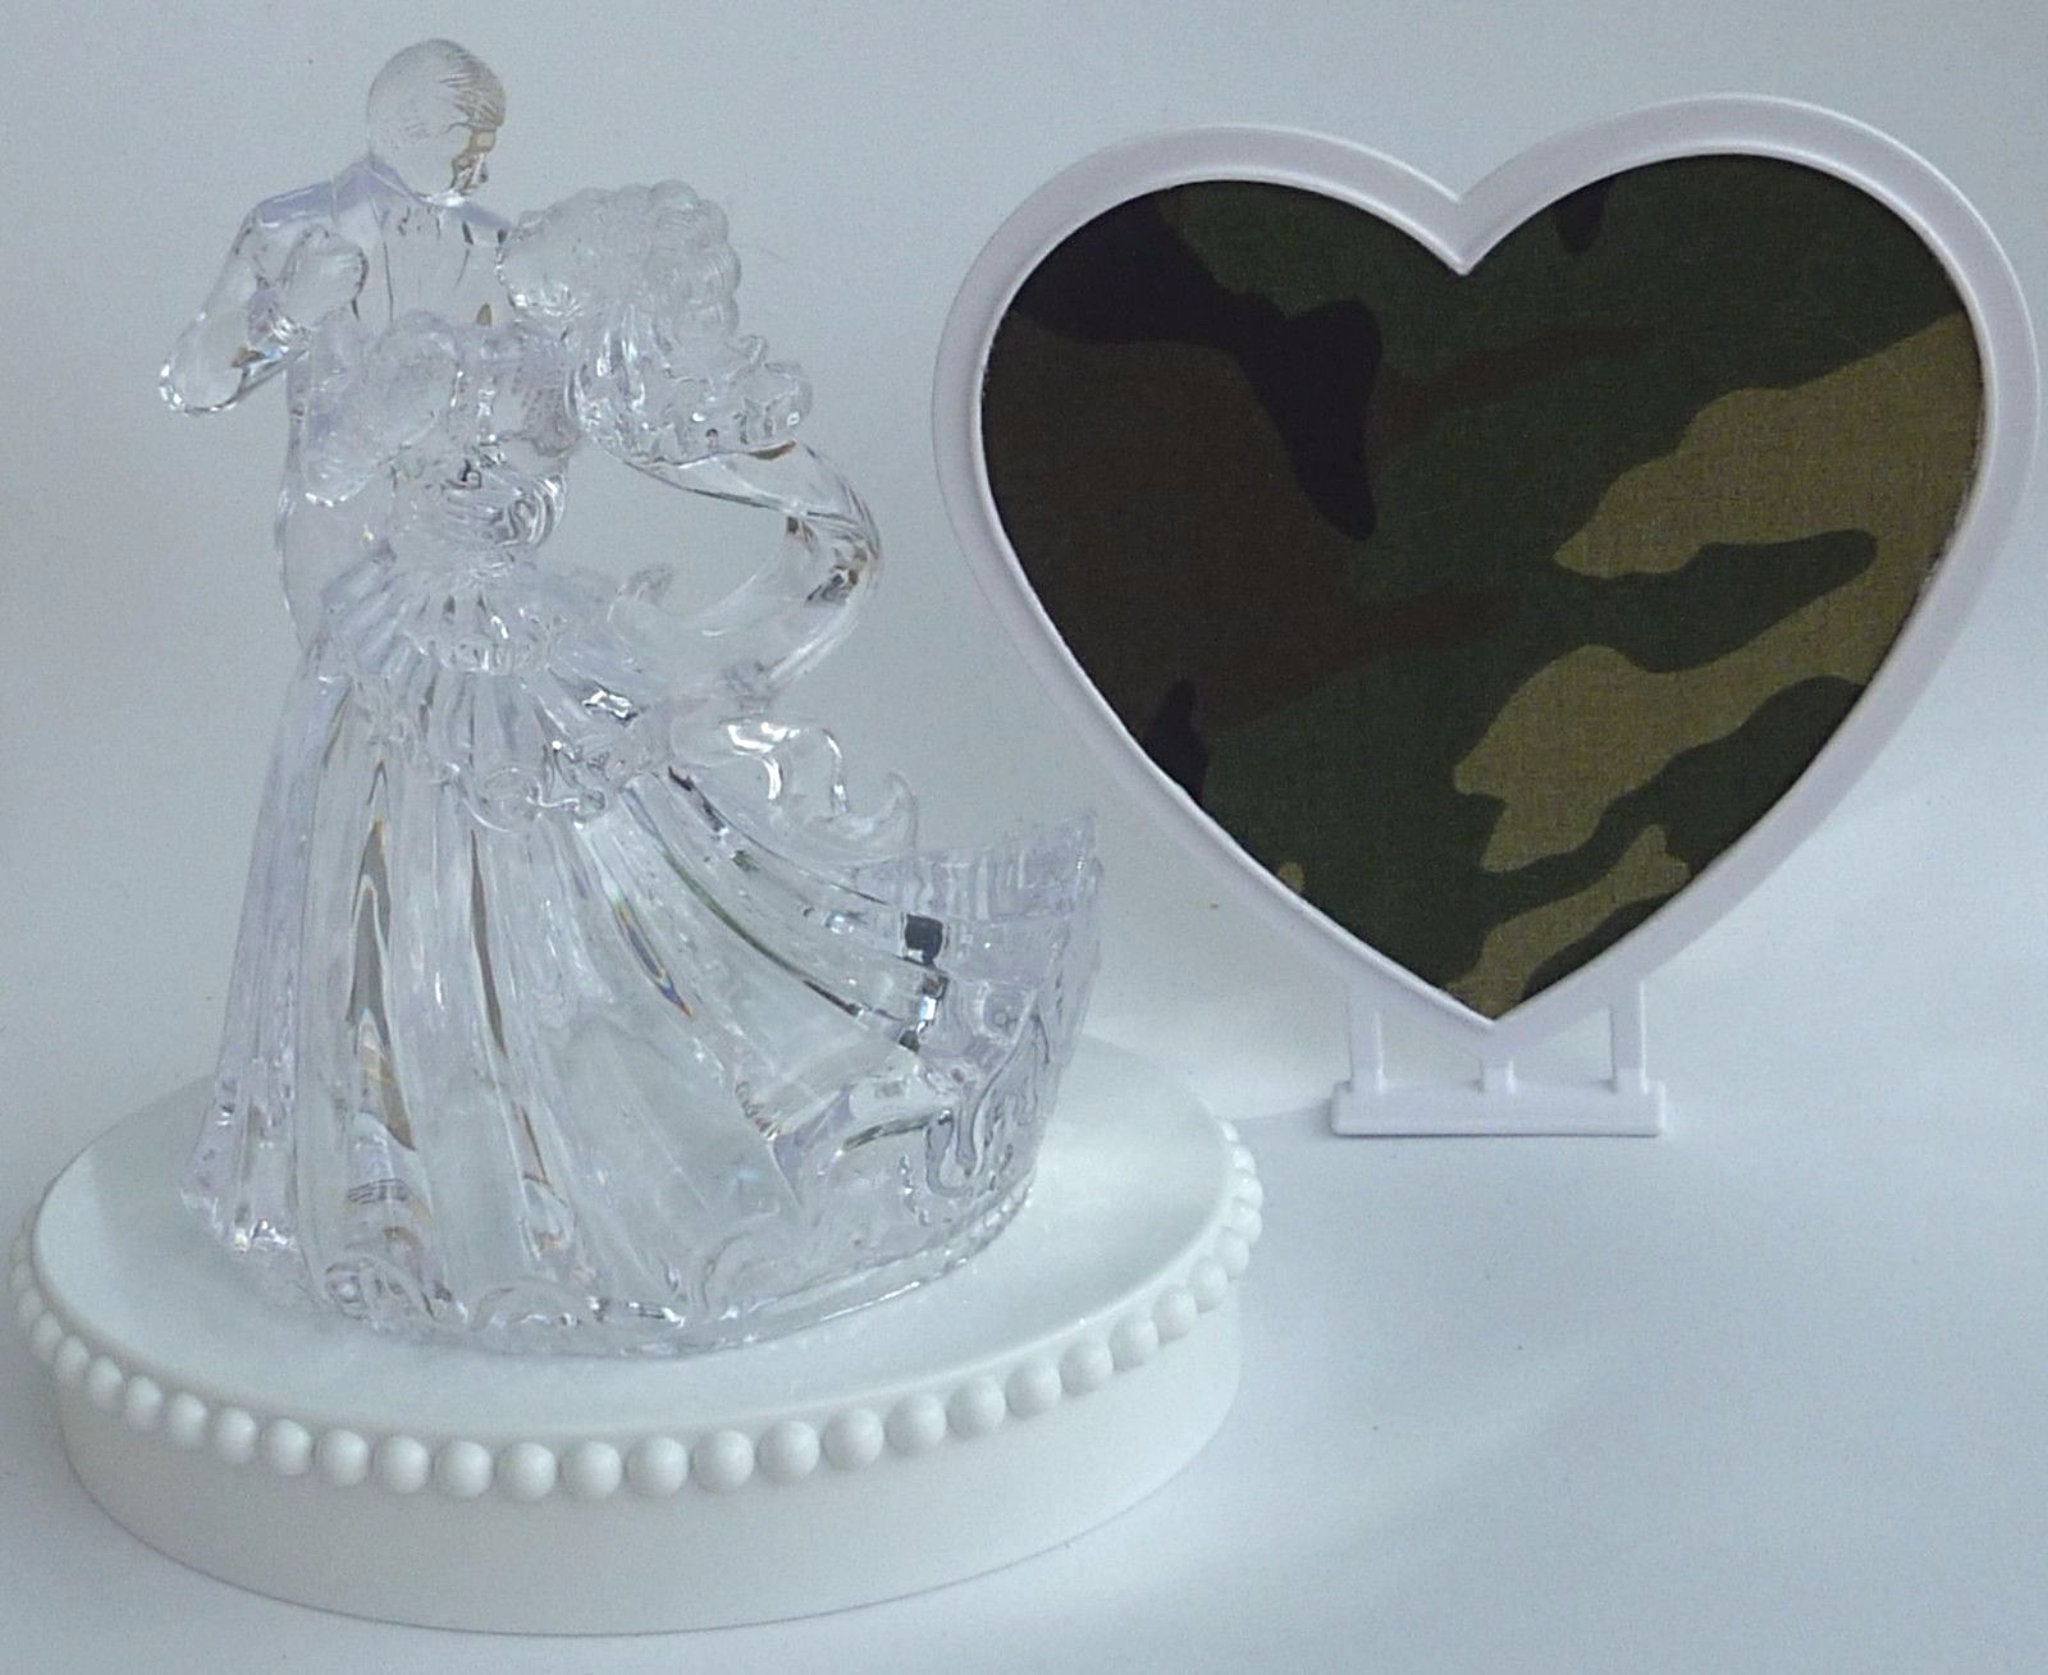 Camo groom's cake top Fun Wedding Things wedding cake topper camouflage green bride and groom dance heart background